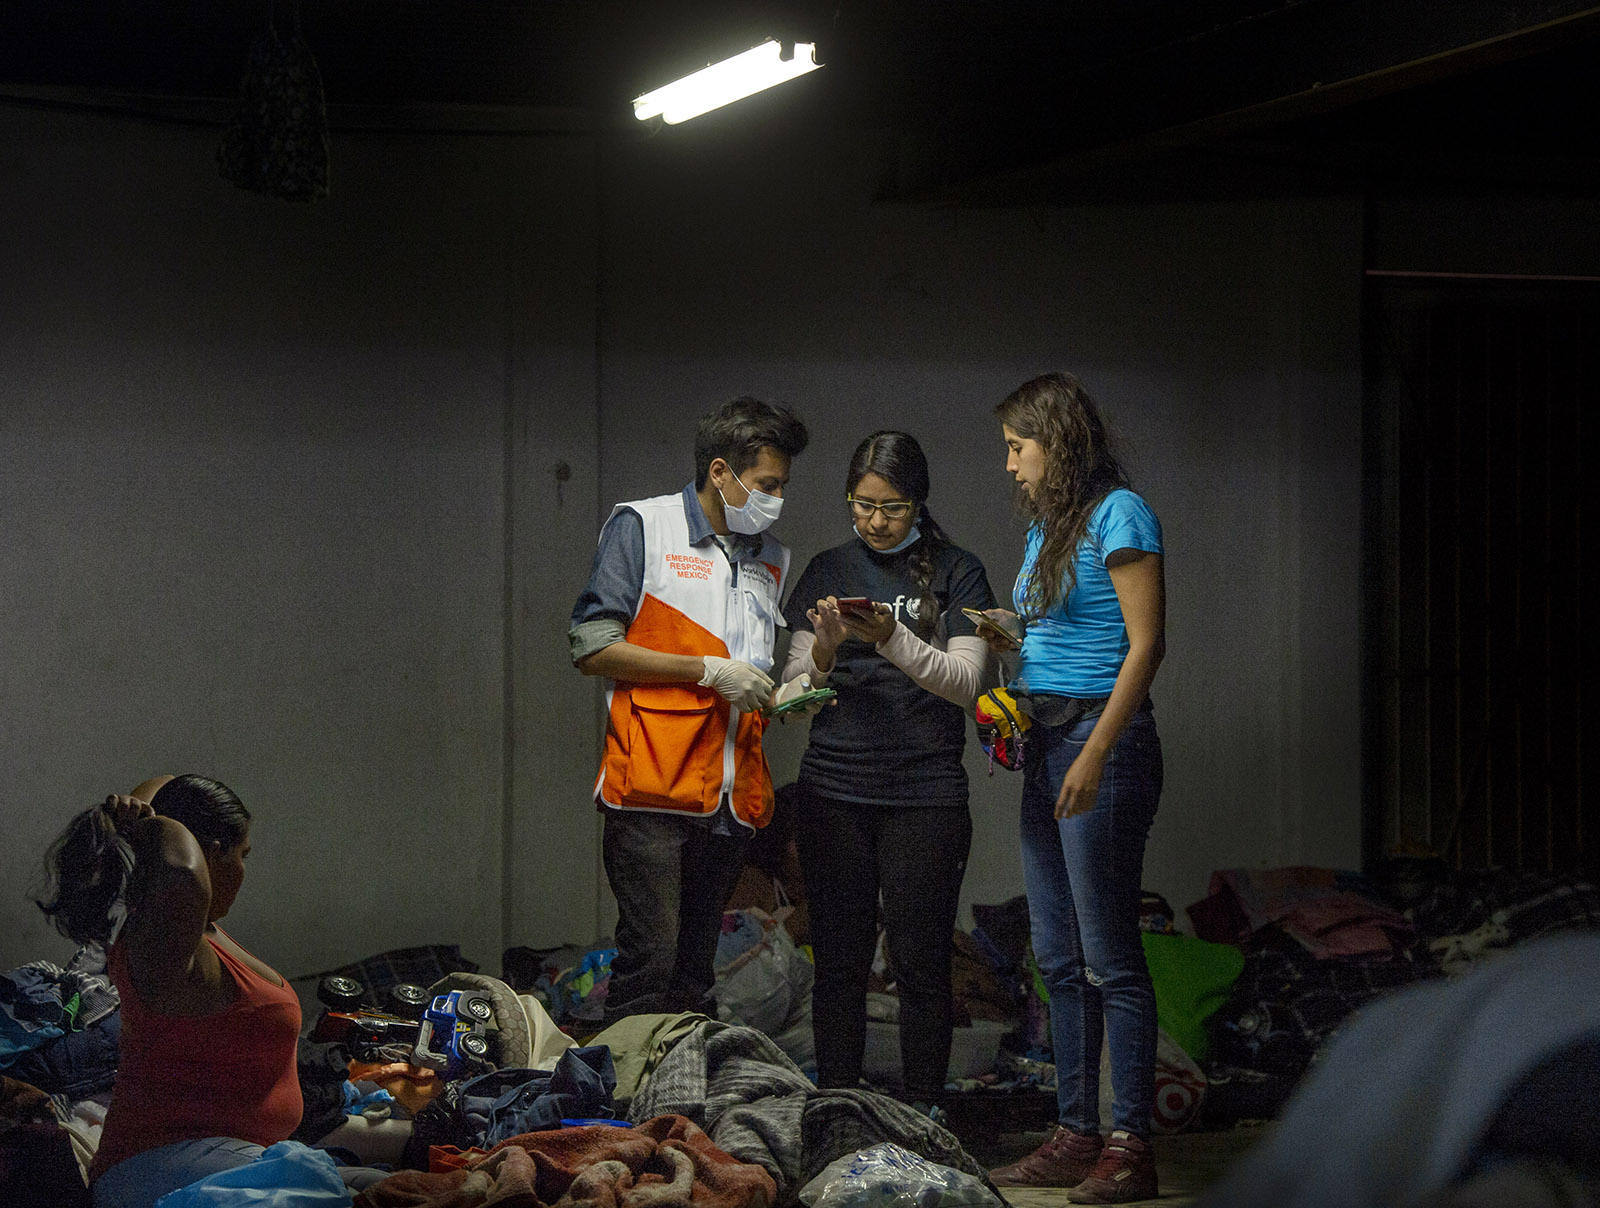 Workers with Unicef, World Vision and La Jugarreta, gather information about the welfare of children staying at the El Barretal shelter in Tijuana on Tuesday, December 4, 2018.